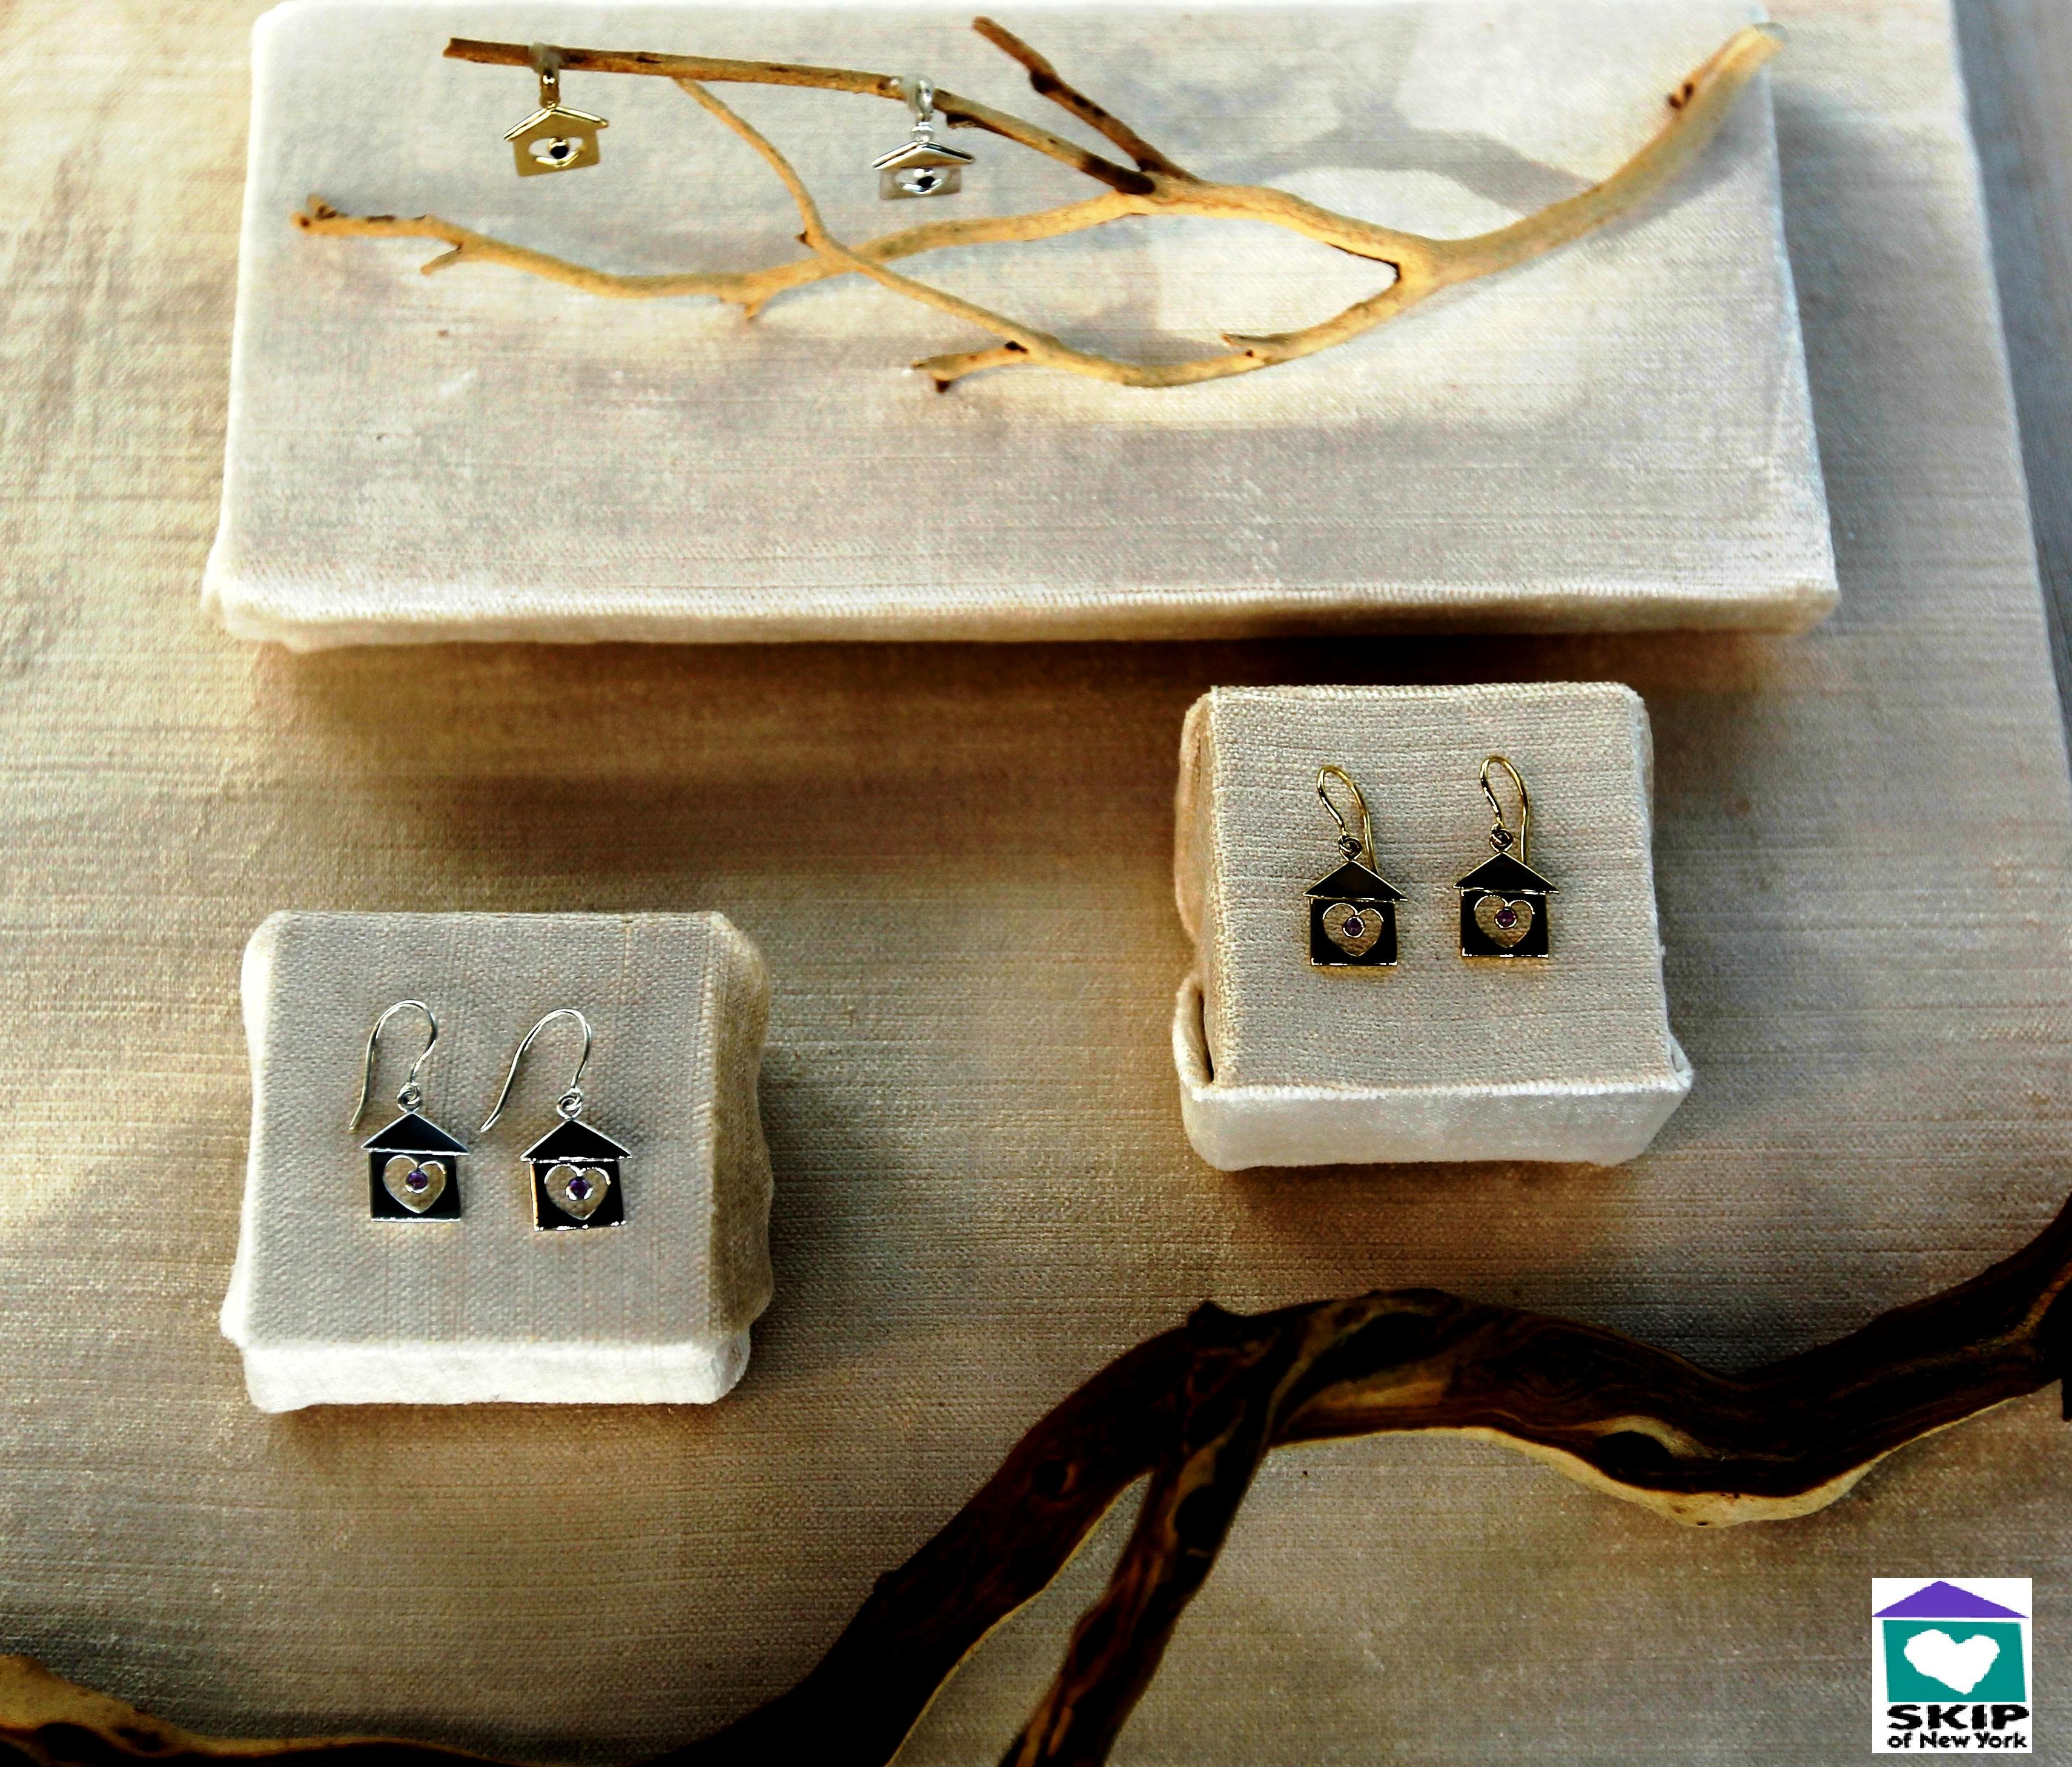 Pieces of jewelry from SKIP of New York's Home Collection. Proceeds from Home Collection jewelry sales go to SKIP of New York to help make the dream of home real for thousands of sick and developmentally disabled kids.